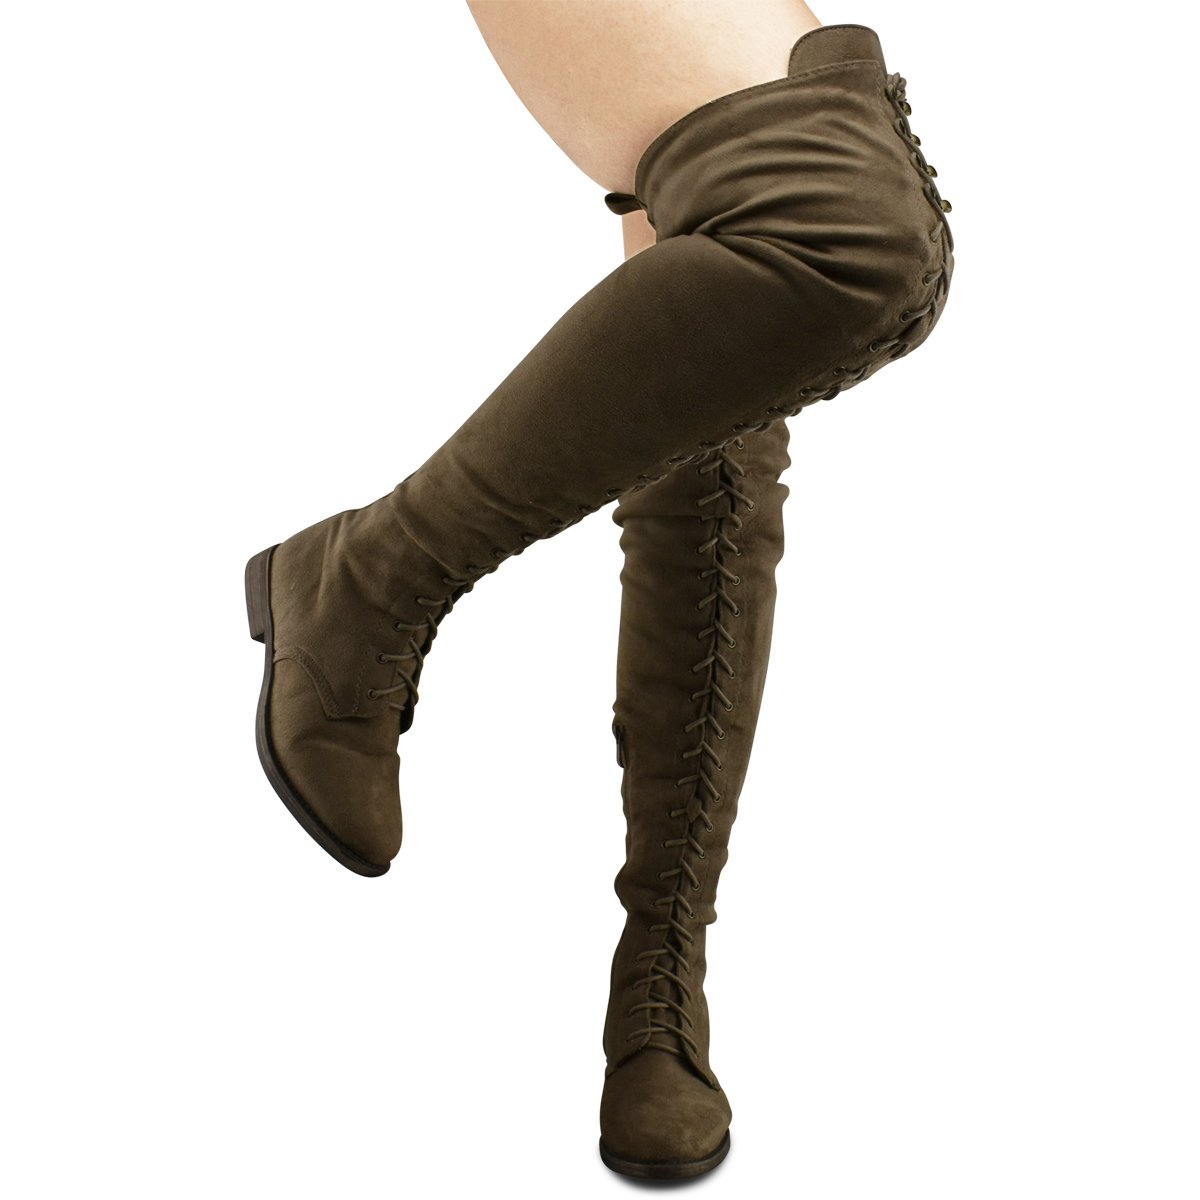 Premier Standard -Women's Lace Thigh High Over The Knee Riding Boots - Side Zipper Comfy Vegan Suede, TPS Isla-45 Taupe Size 7.5